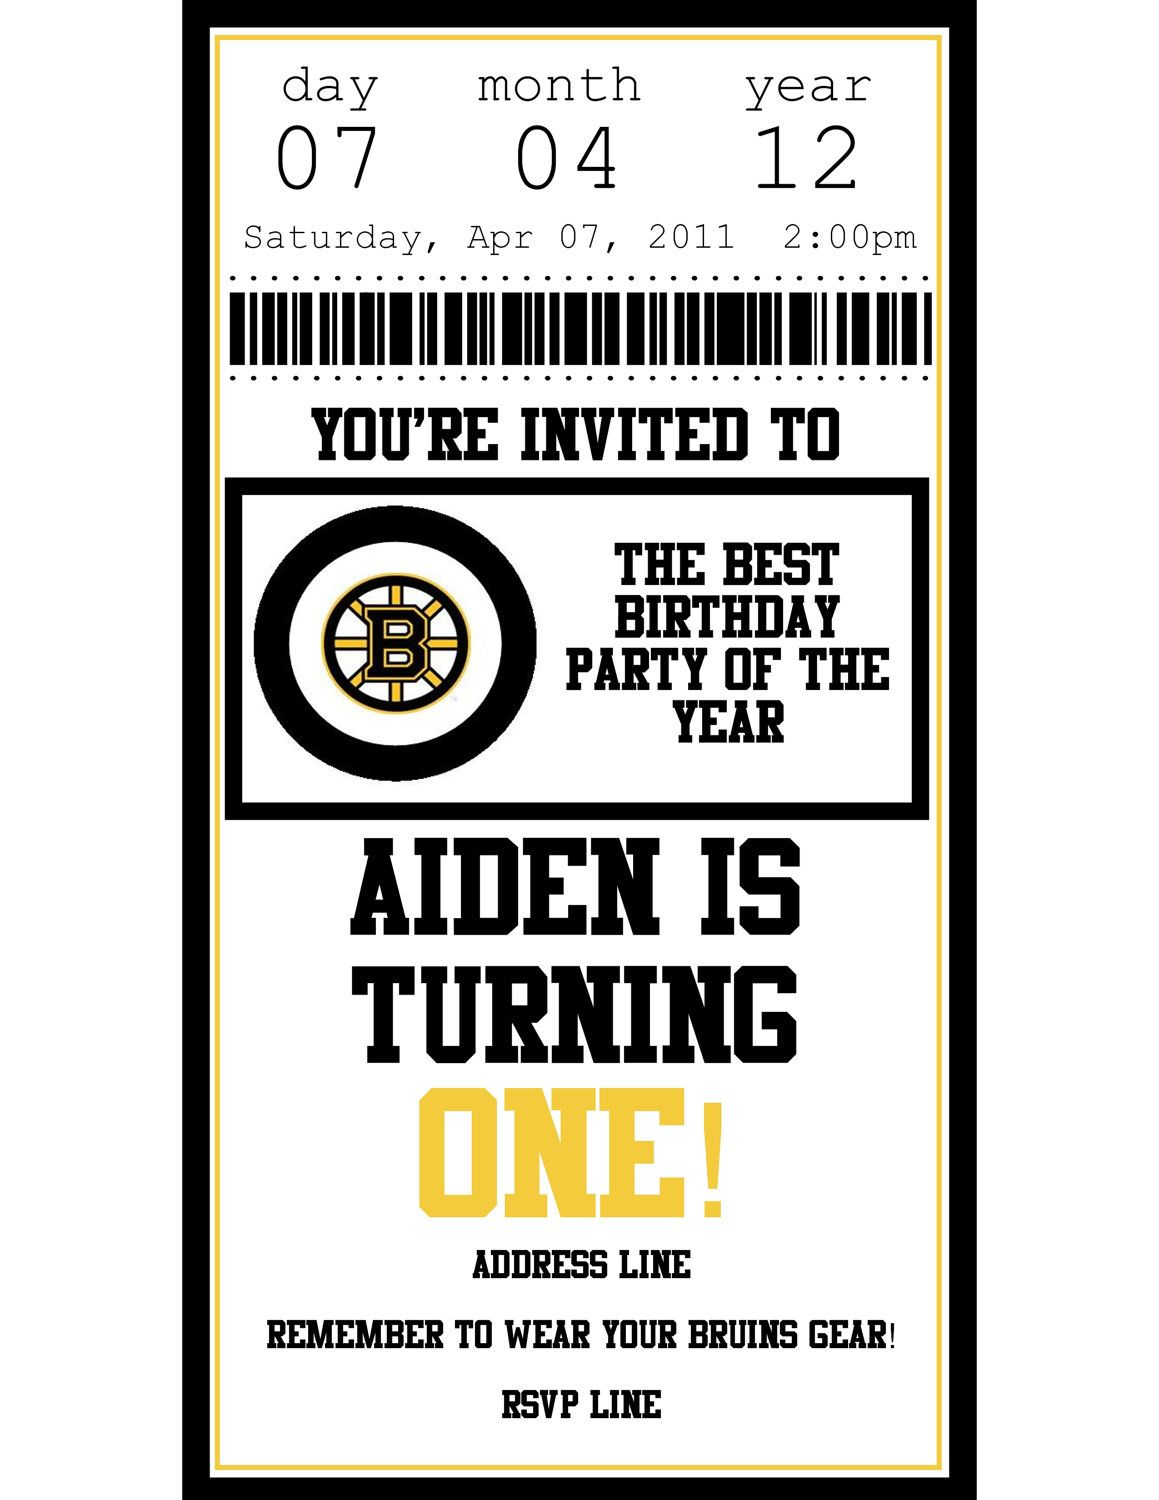 Personalized Printable Boston Bruins Hockey Ticket Birthday